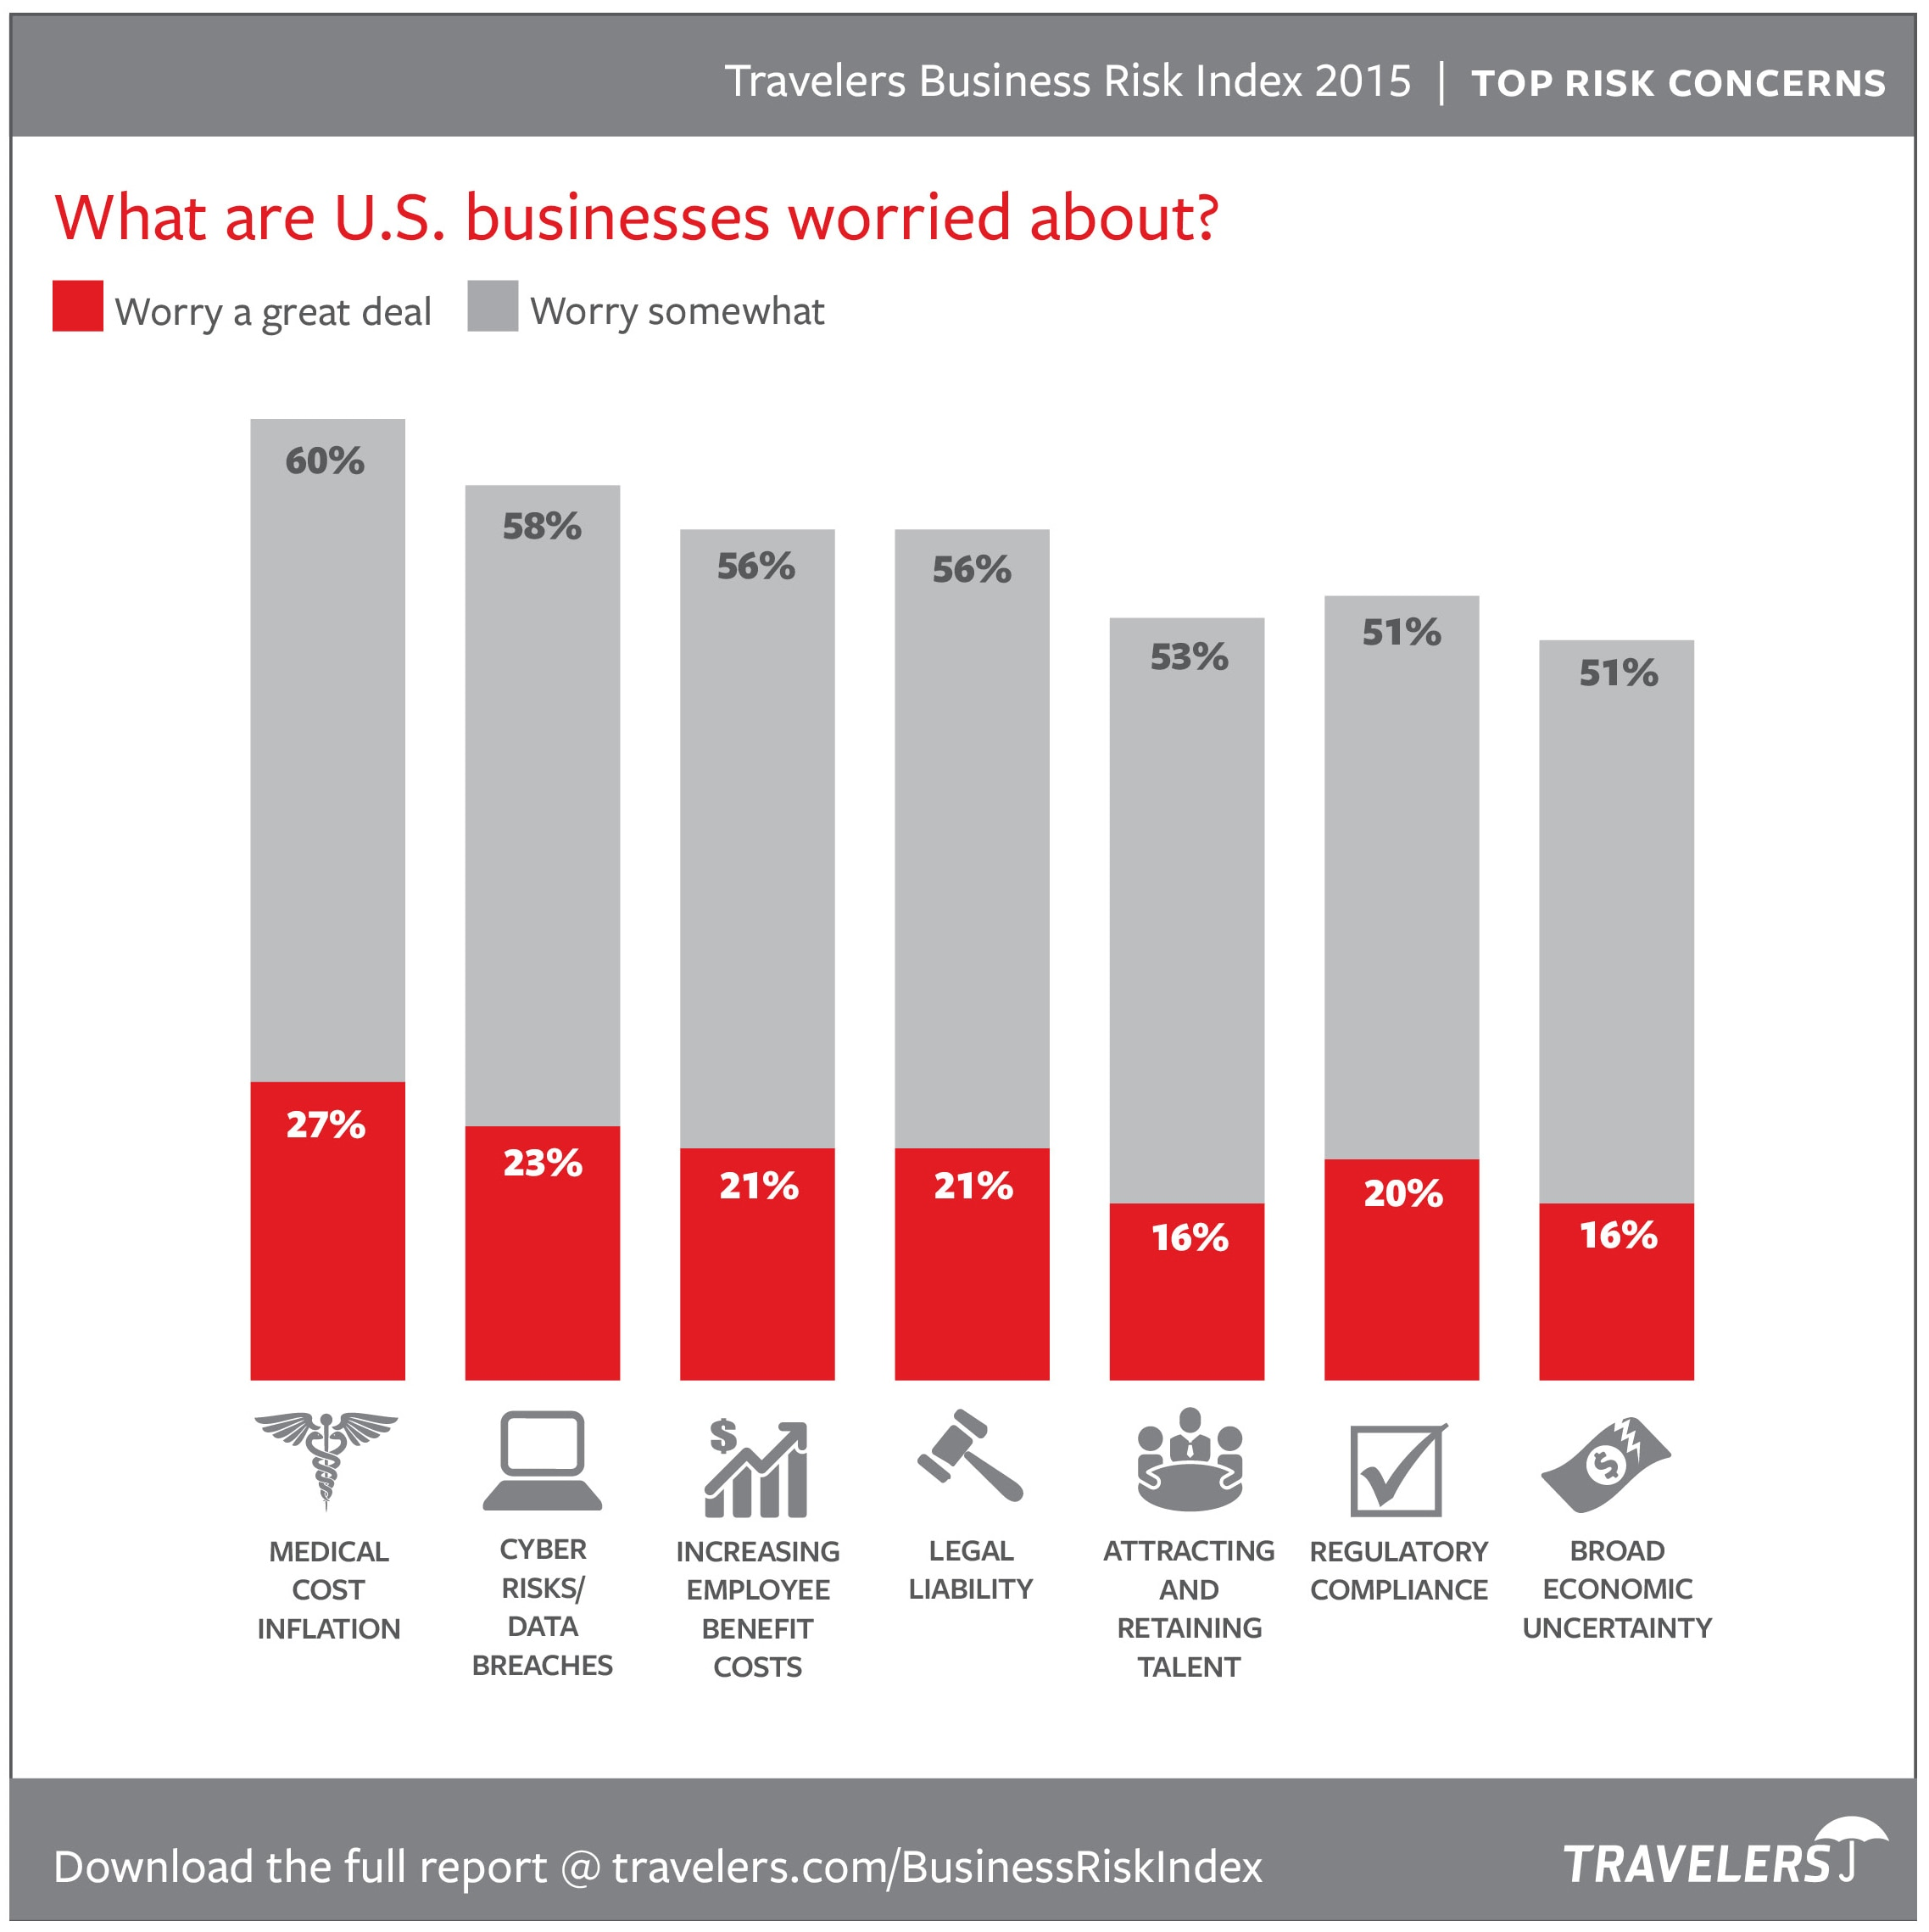 Top Risk Concerns chart from 2015 Business Risk Index